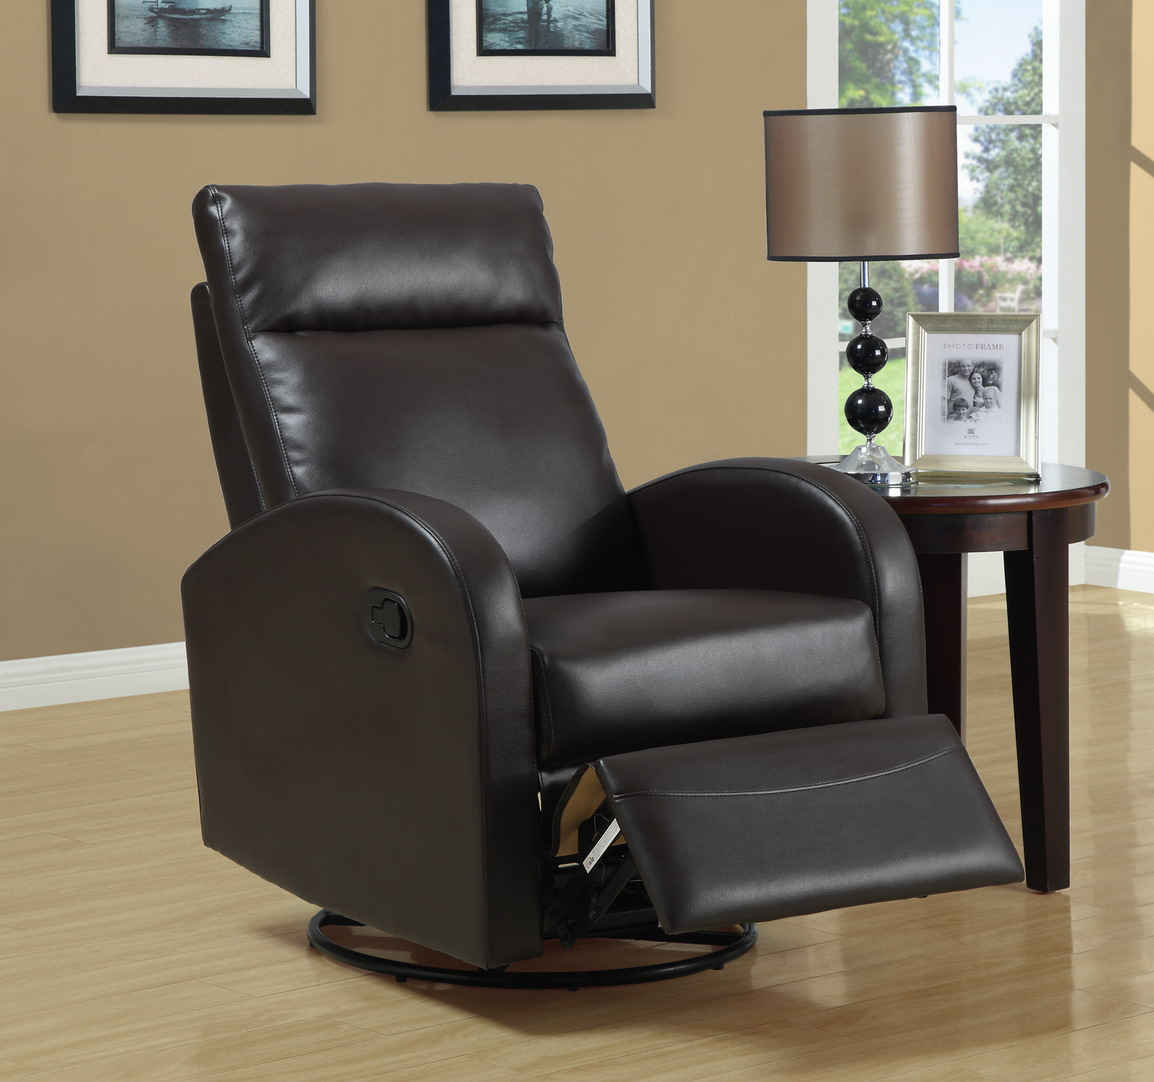 Delicieux Monarch Specialties Bonded Leather Swivel Rocker Recliner, Dark Brown,  Solid   Walmart.com